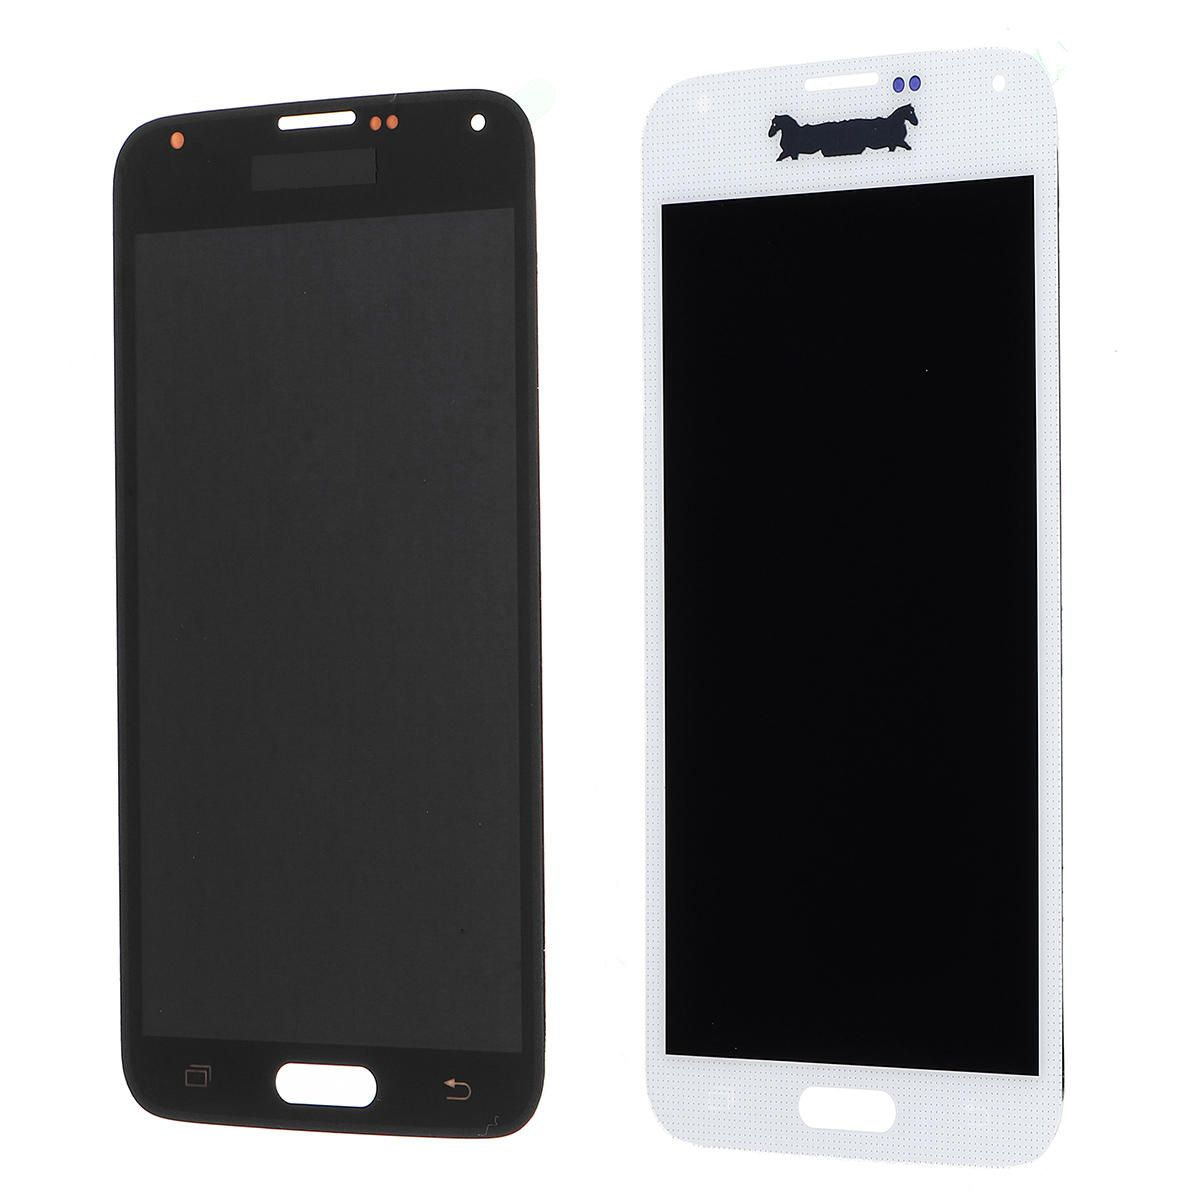 OLED Display + Touch Screen Digitizer Screen Replacement With Repair Tools For Samsung Galaxy S5 G9000 #touchscreendisplay